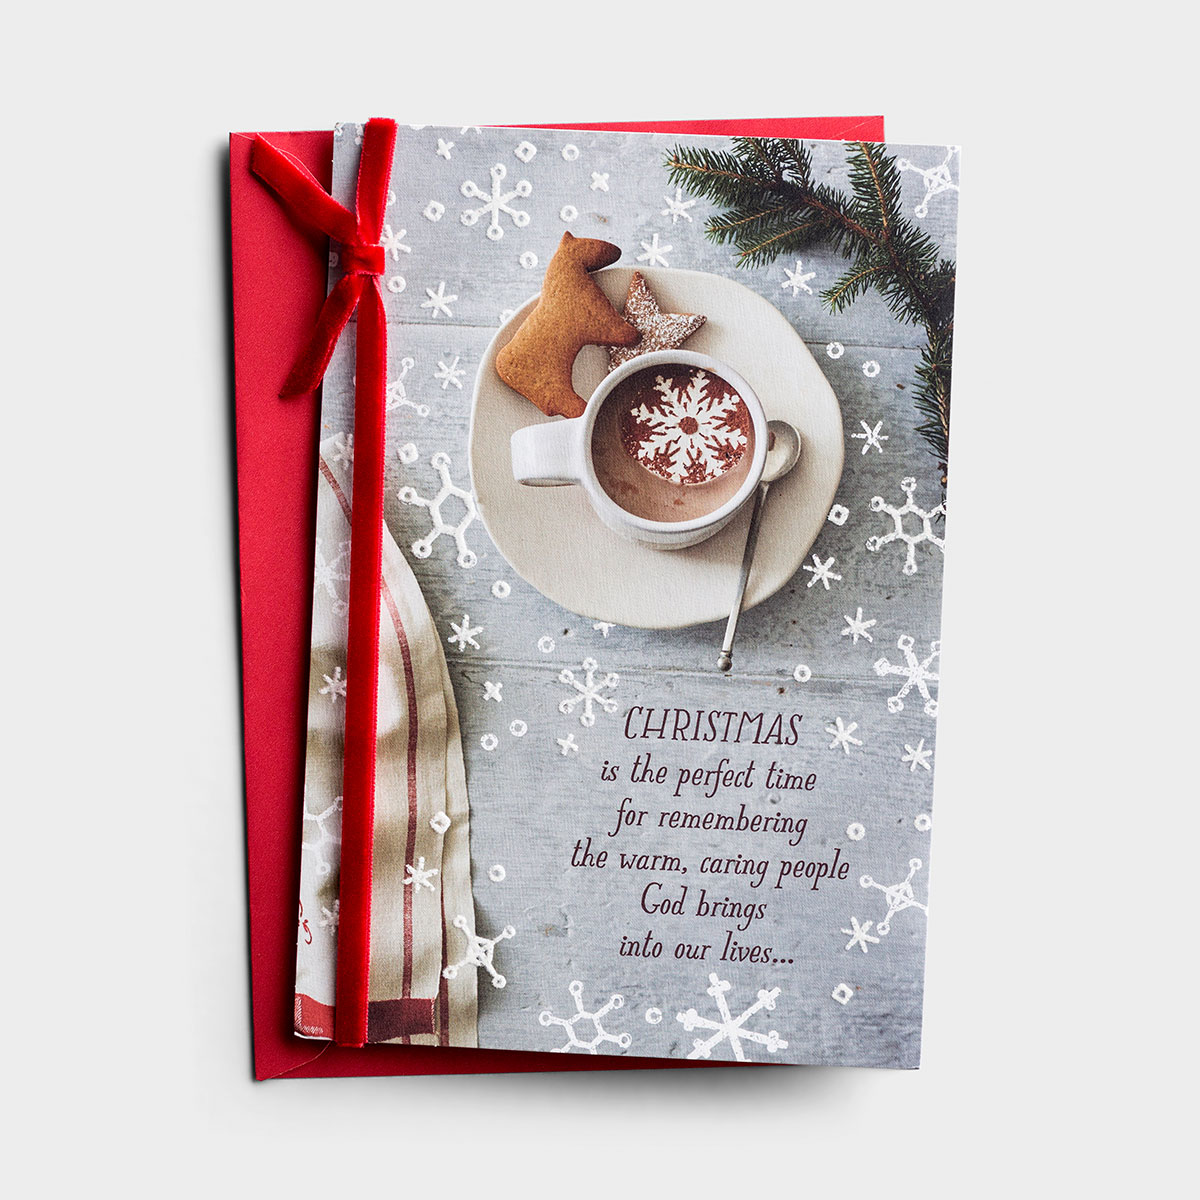 Christmas - Someone Special - Christmas Is the Perfect Time - 1 Premium Card